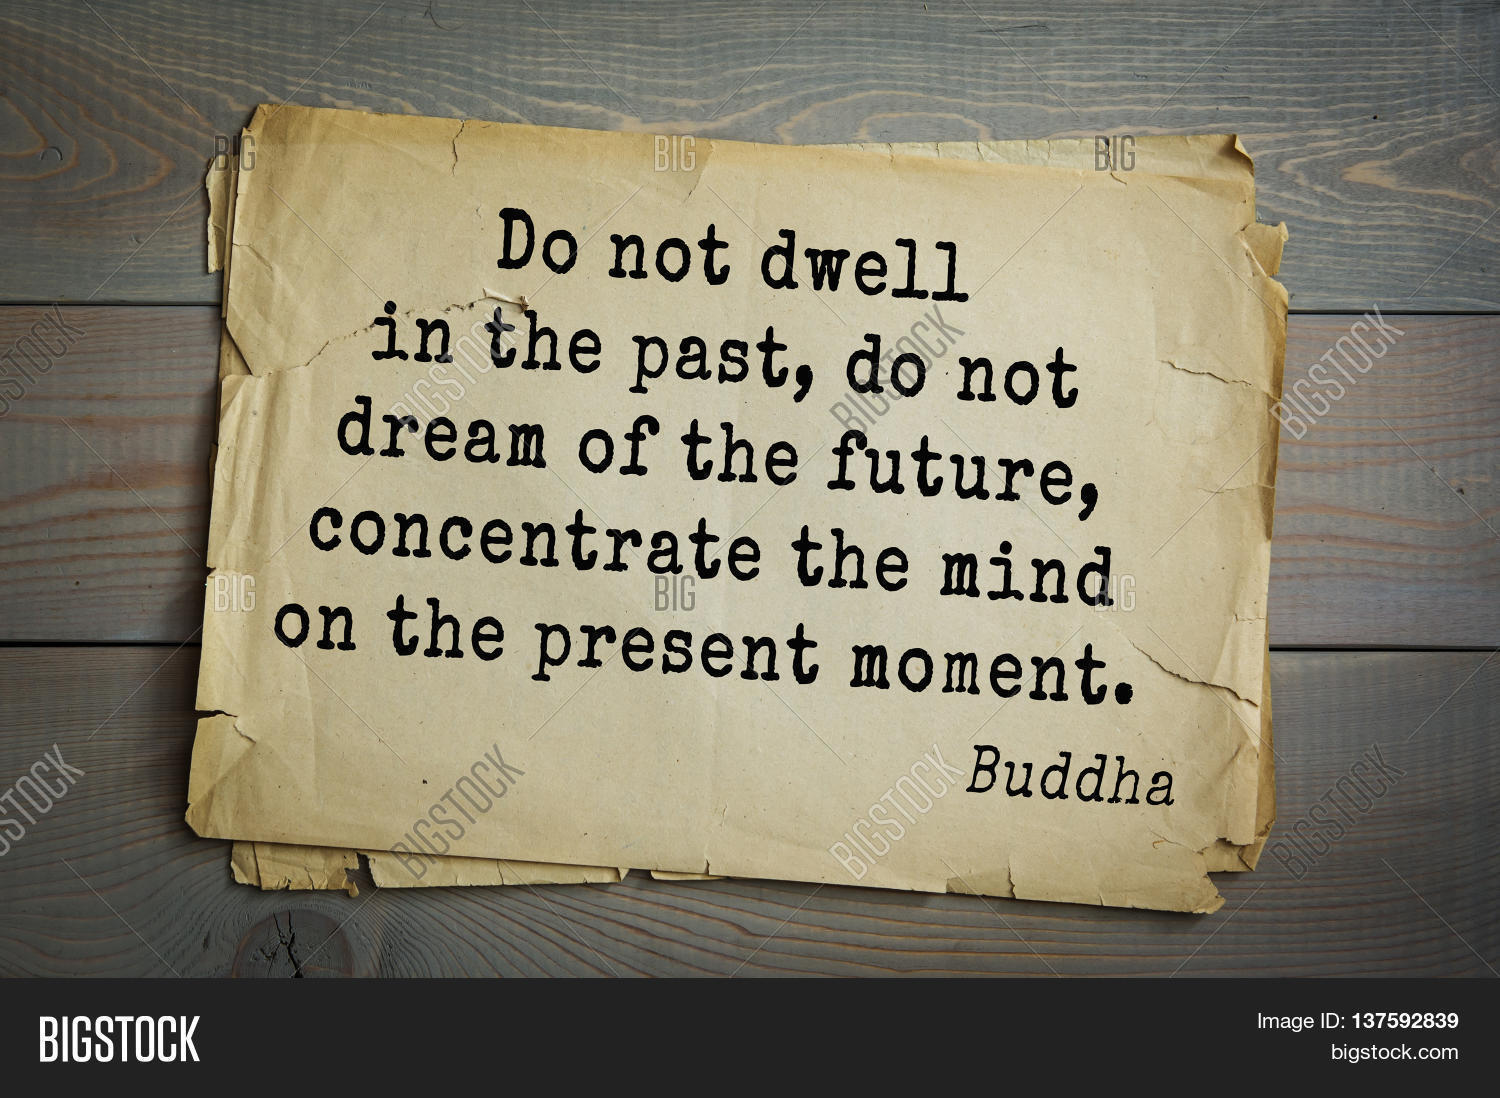 Buddha Quote On Old Paper Background. Do Not Dwell In The Past, Do Not